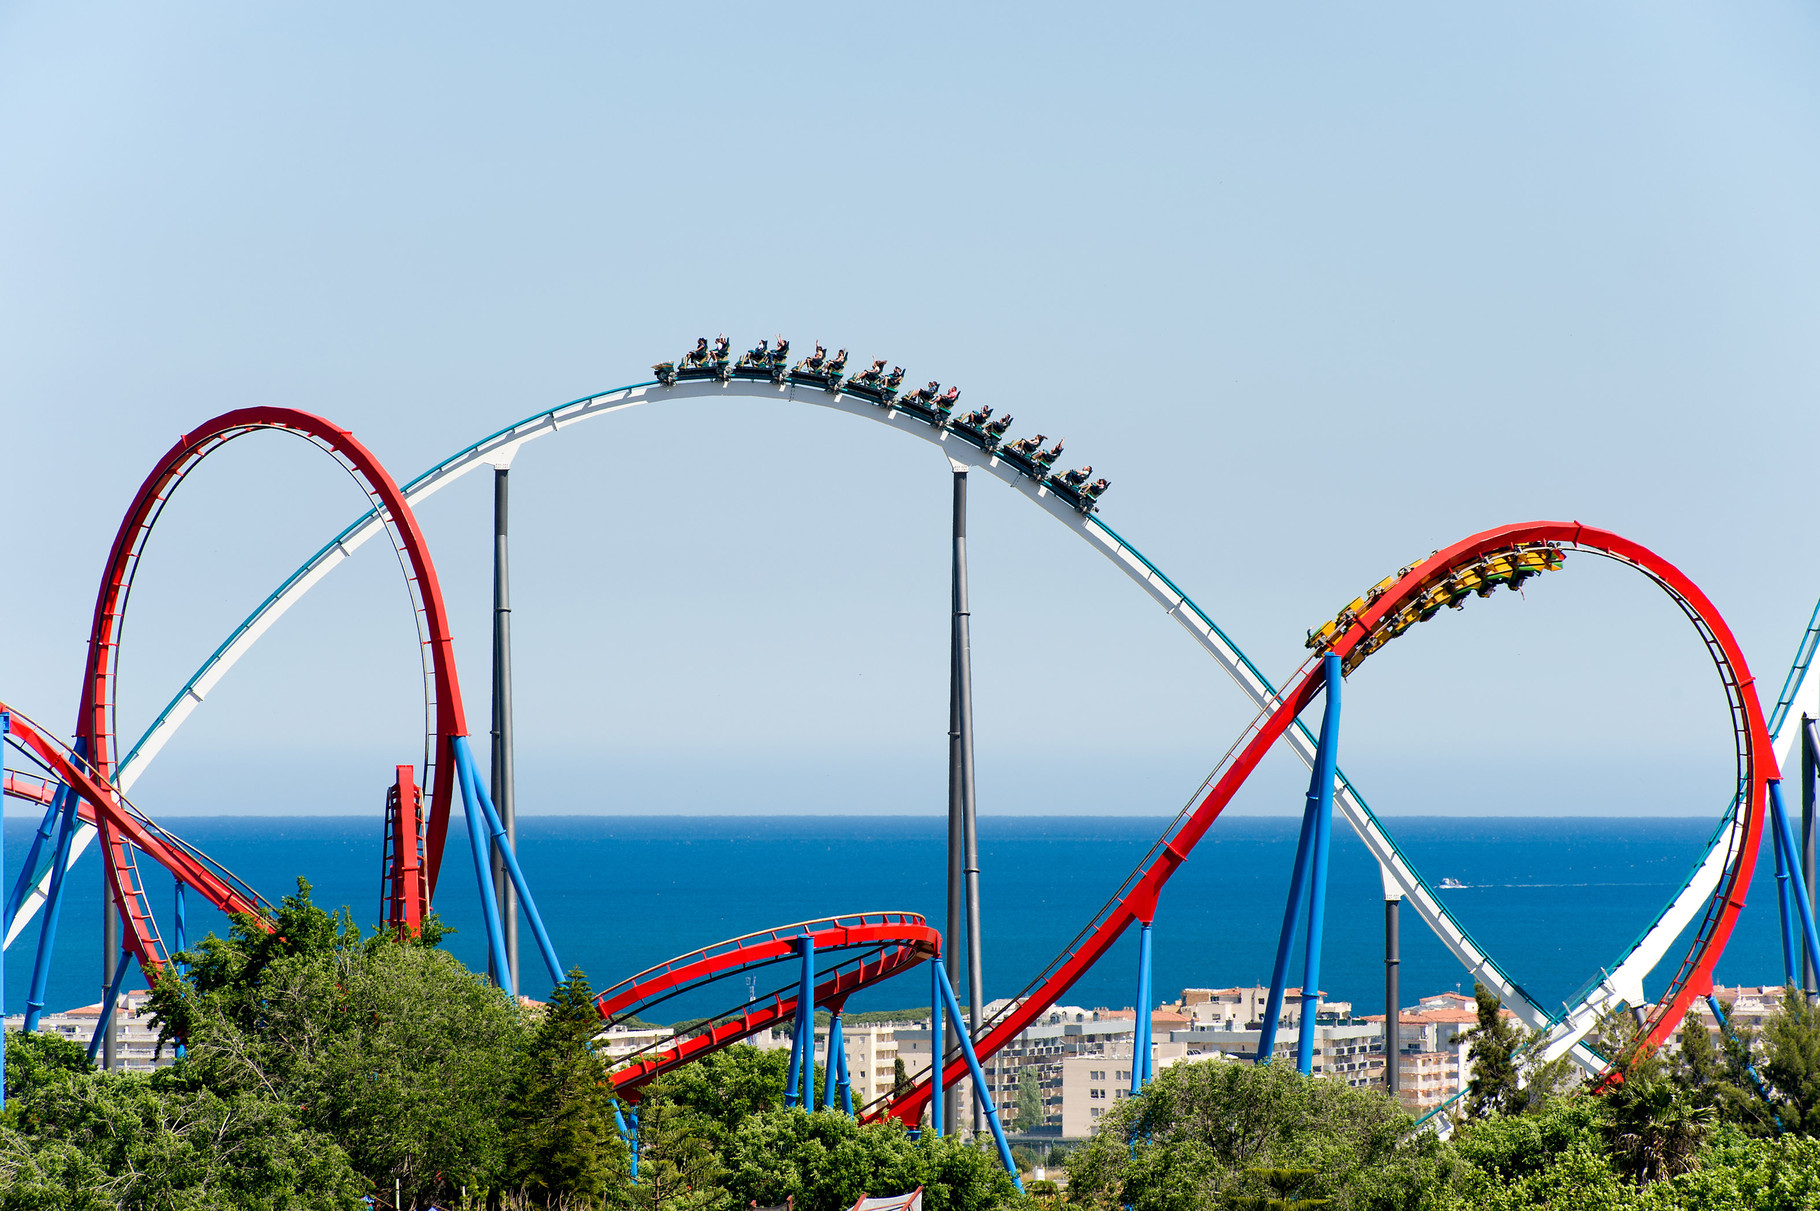 Tivoli Without Rides Best Amusement Parks In Europe Europe S Best Destinations